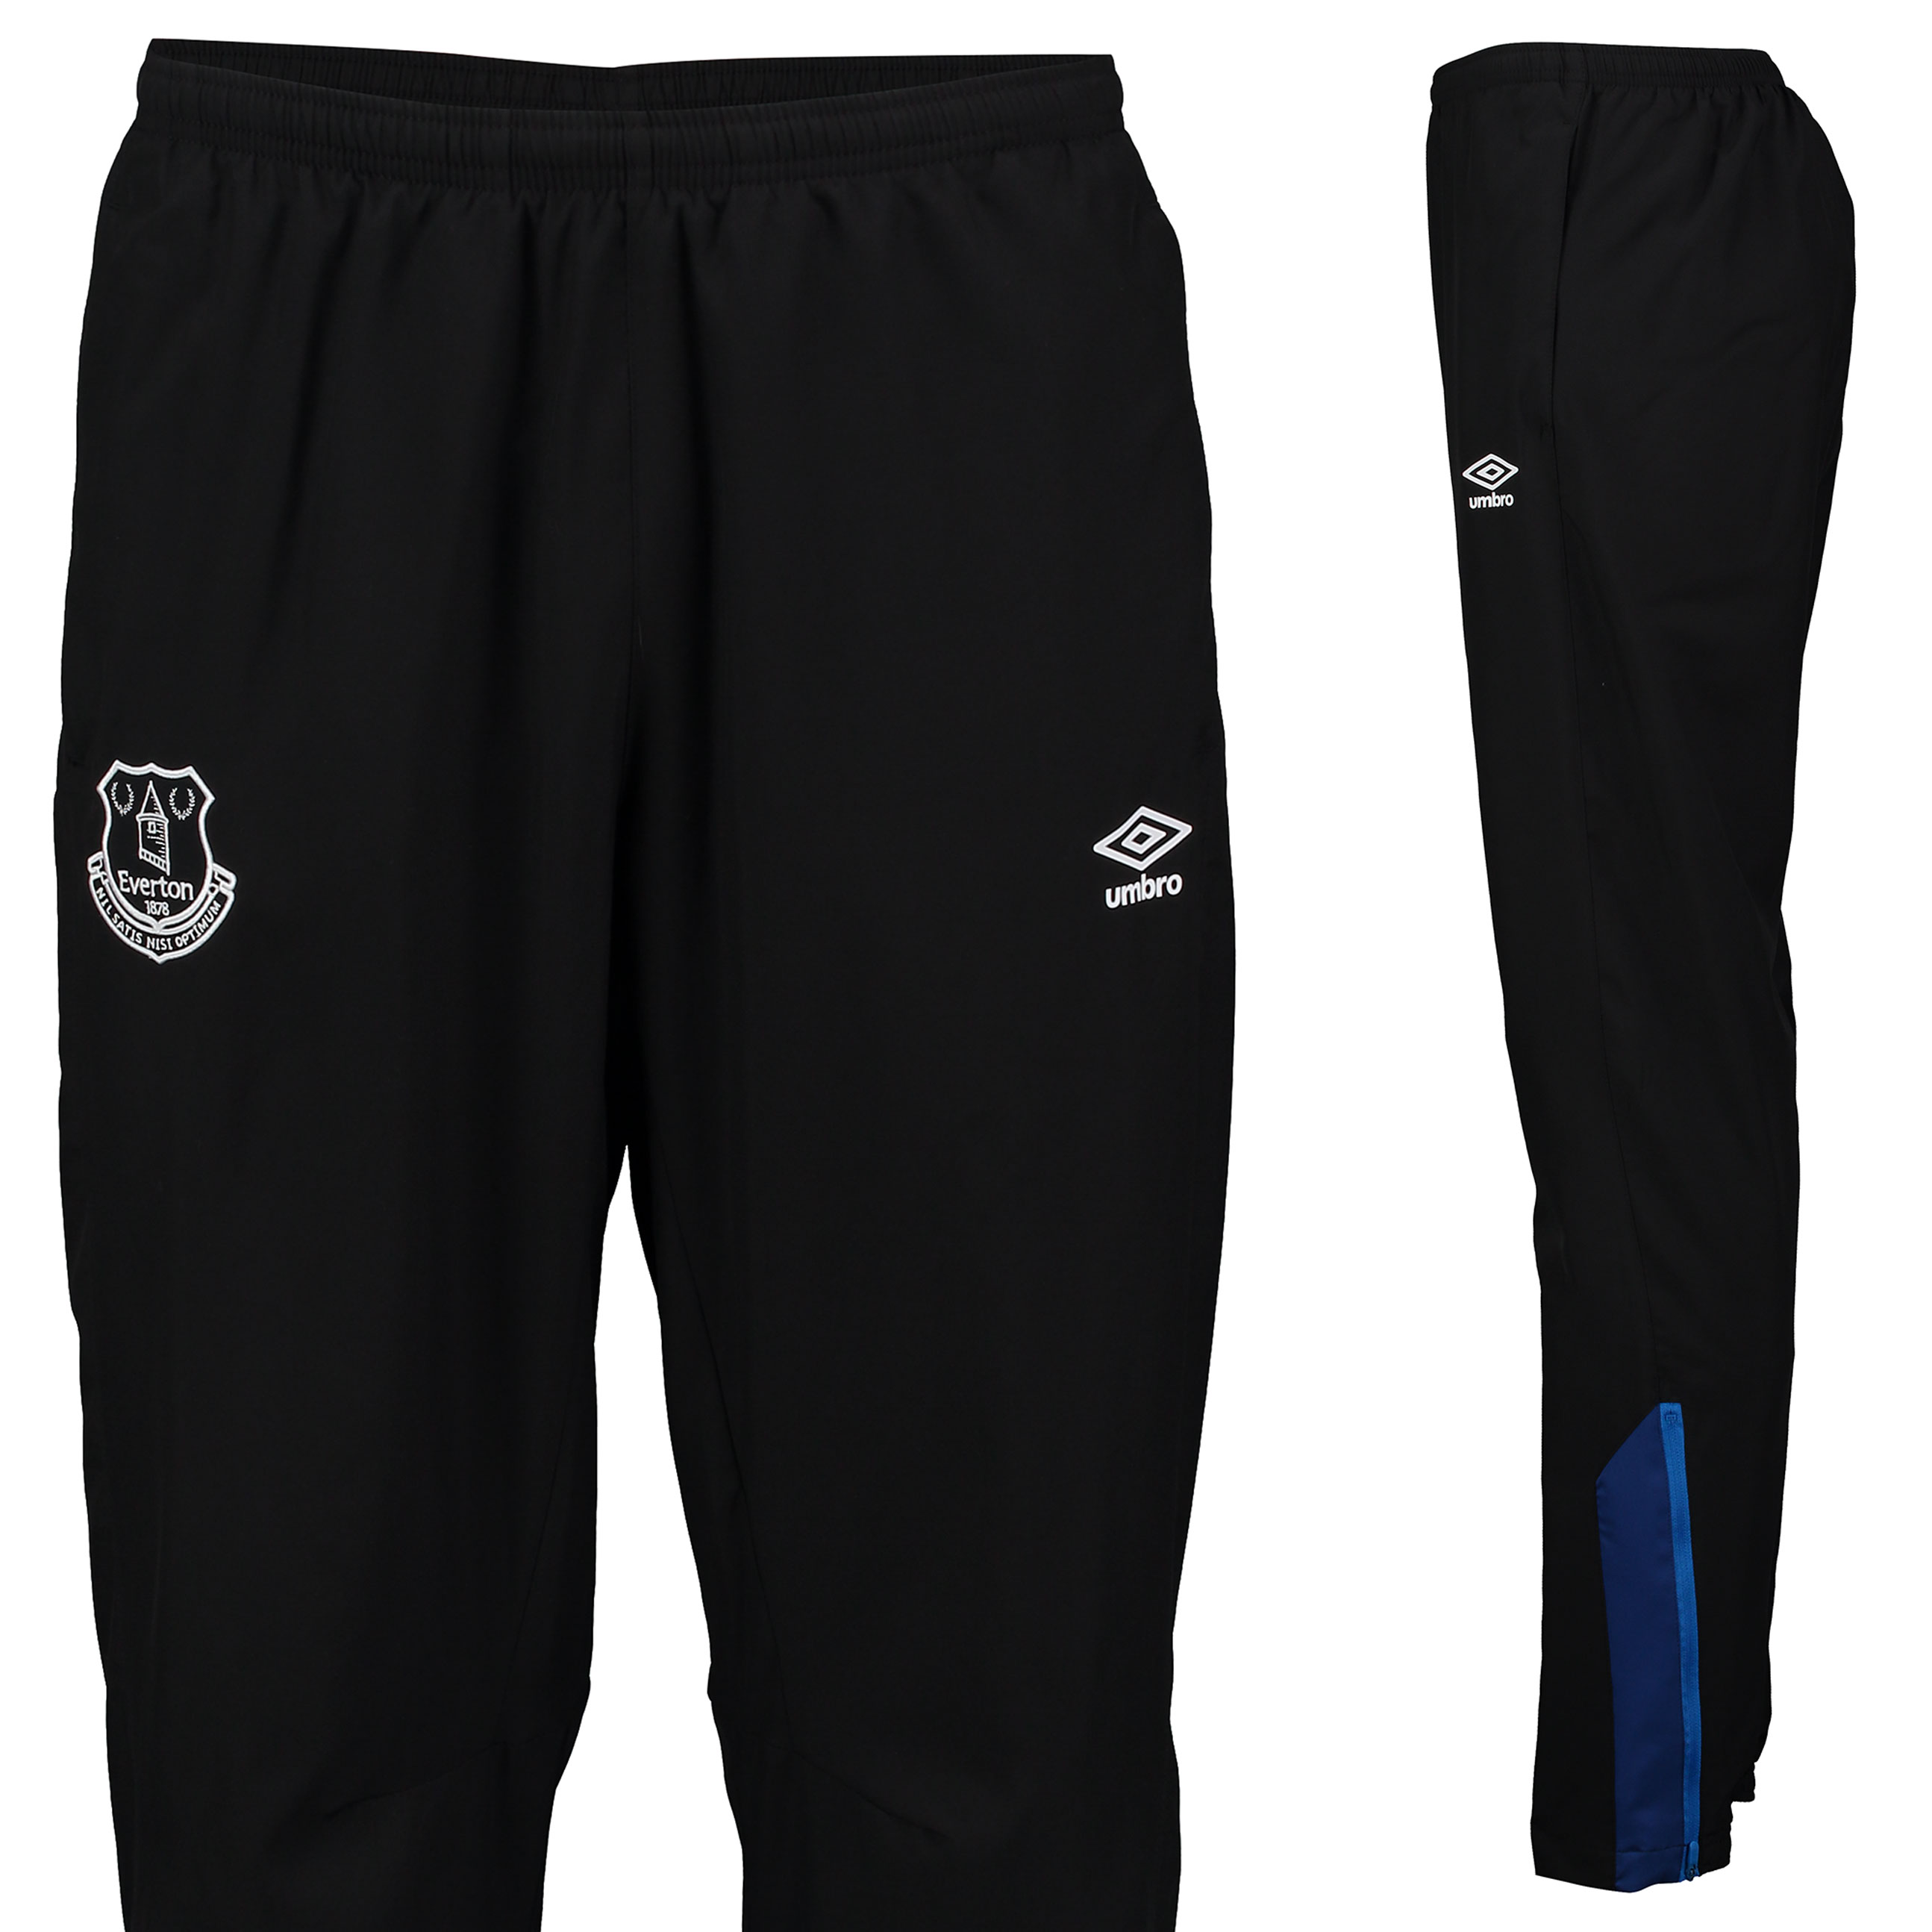 Everton Training Woven Pant - Black/Sodalite Blue